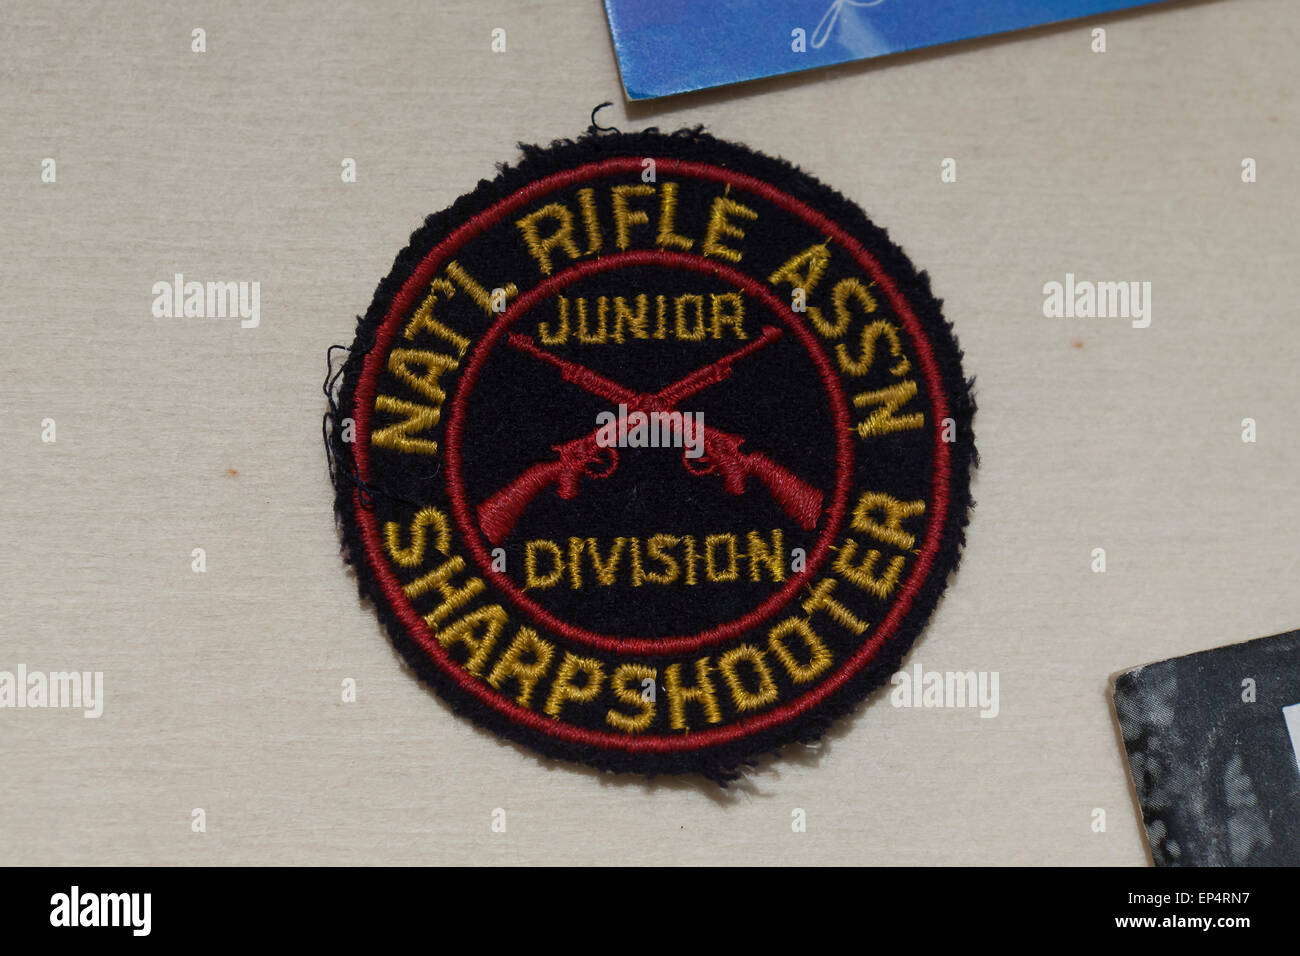 NRA Sharpshooter Junior Division patch - USA - Stock Image